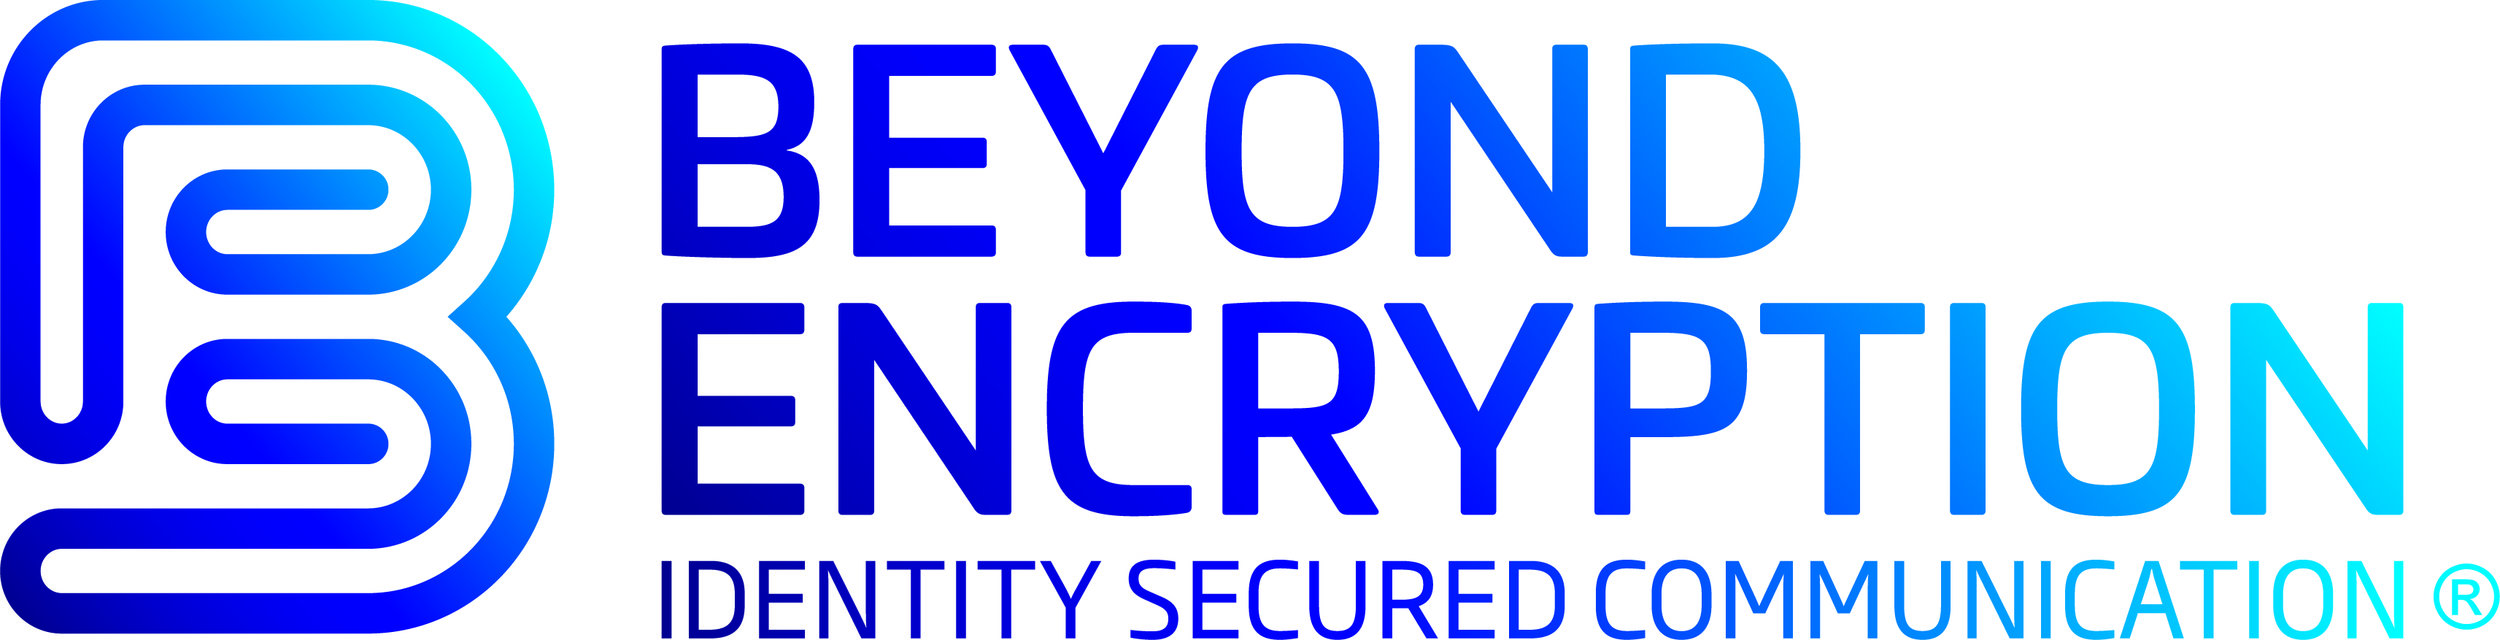 1st March 2019 - We are absolutely delighted to announce that Beyond Encryption will be joining the Service Sector exhibitors at Business Innovation South Expo. Their tailored indentity secured protection will surely become a standard practice means of transferring sensitive data for all businesses in the future. More news to follow next week about an amazing offer from SEROCU on how they will be helping 24 lucky exhibitors with cyber awareness and planning.